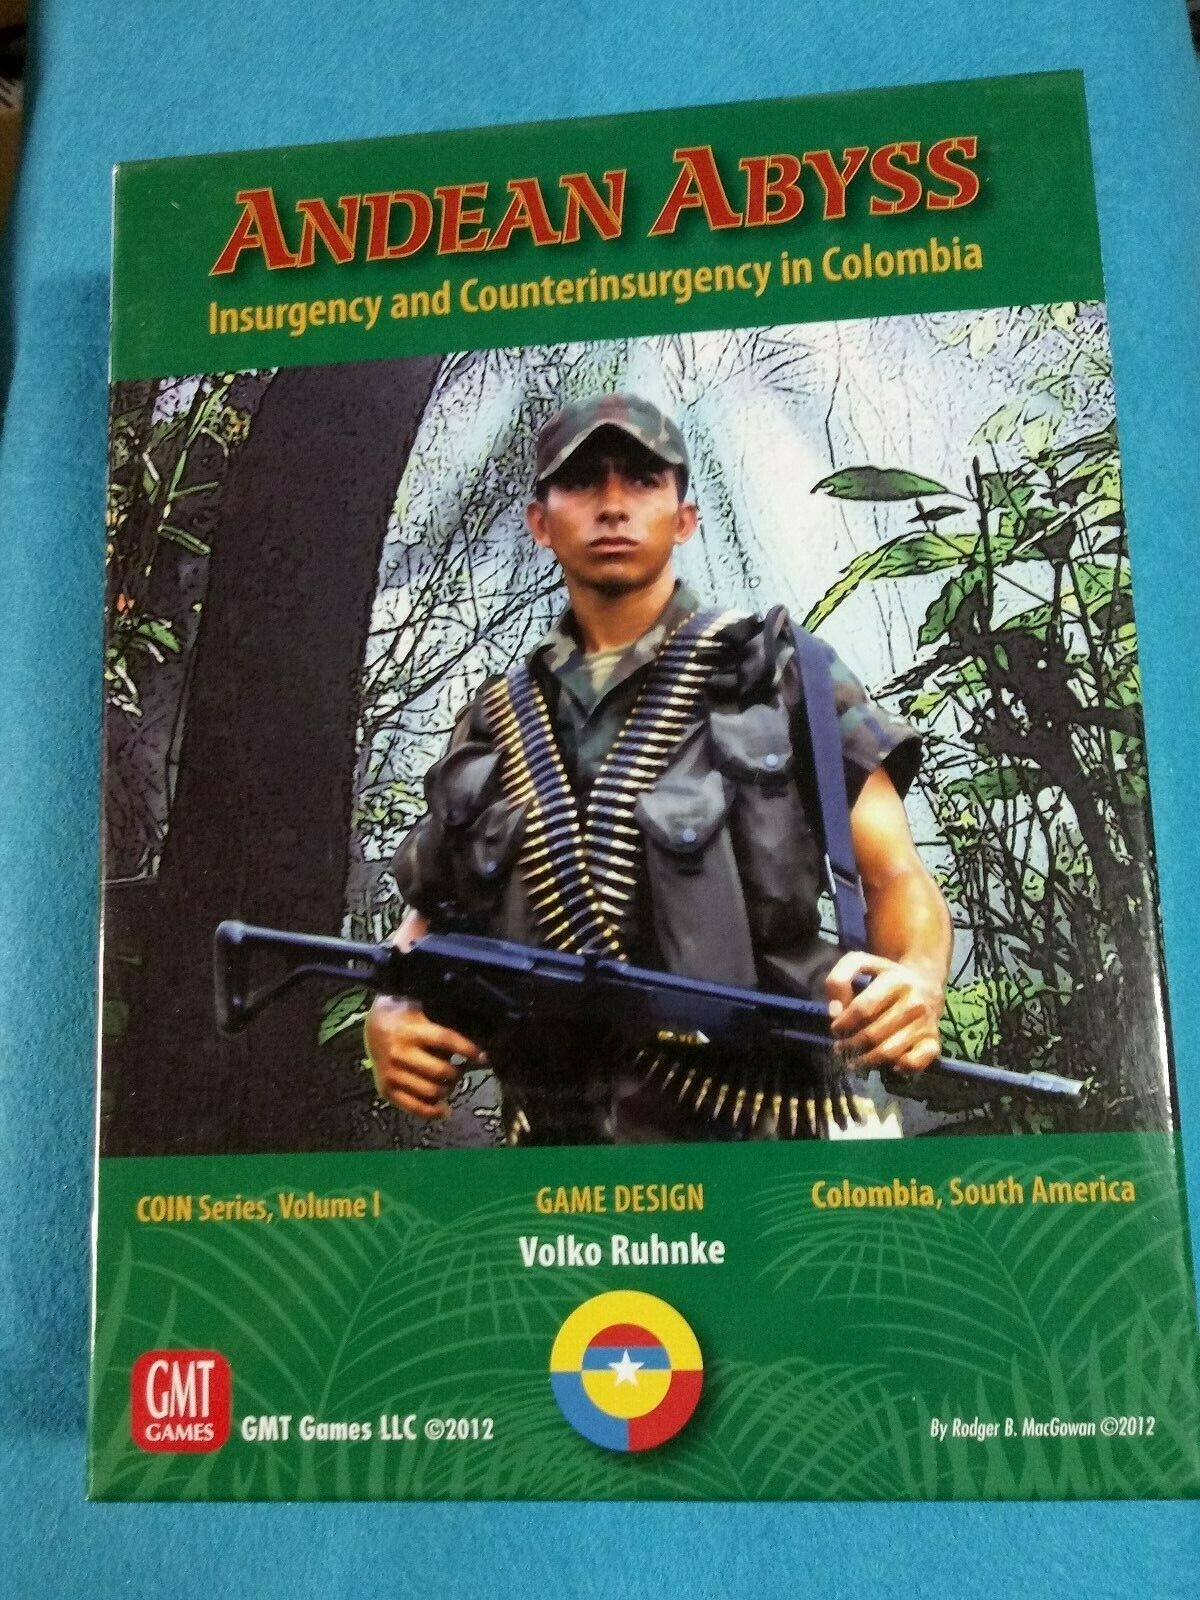 Wargame Boardgame - Andean Abyss, COIN Series Volume I Unpunched - WG509